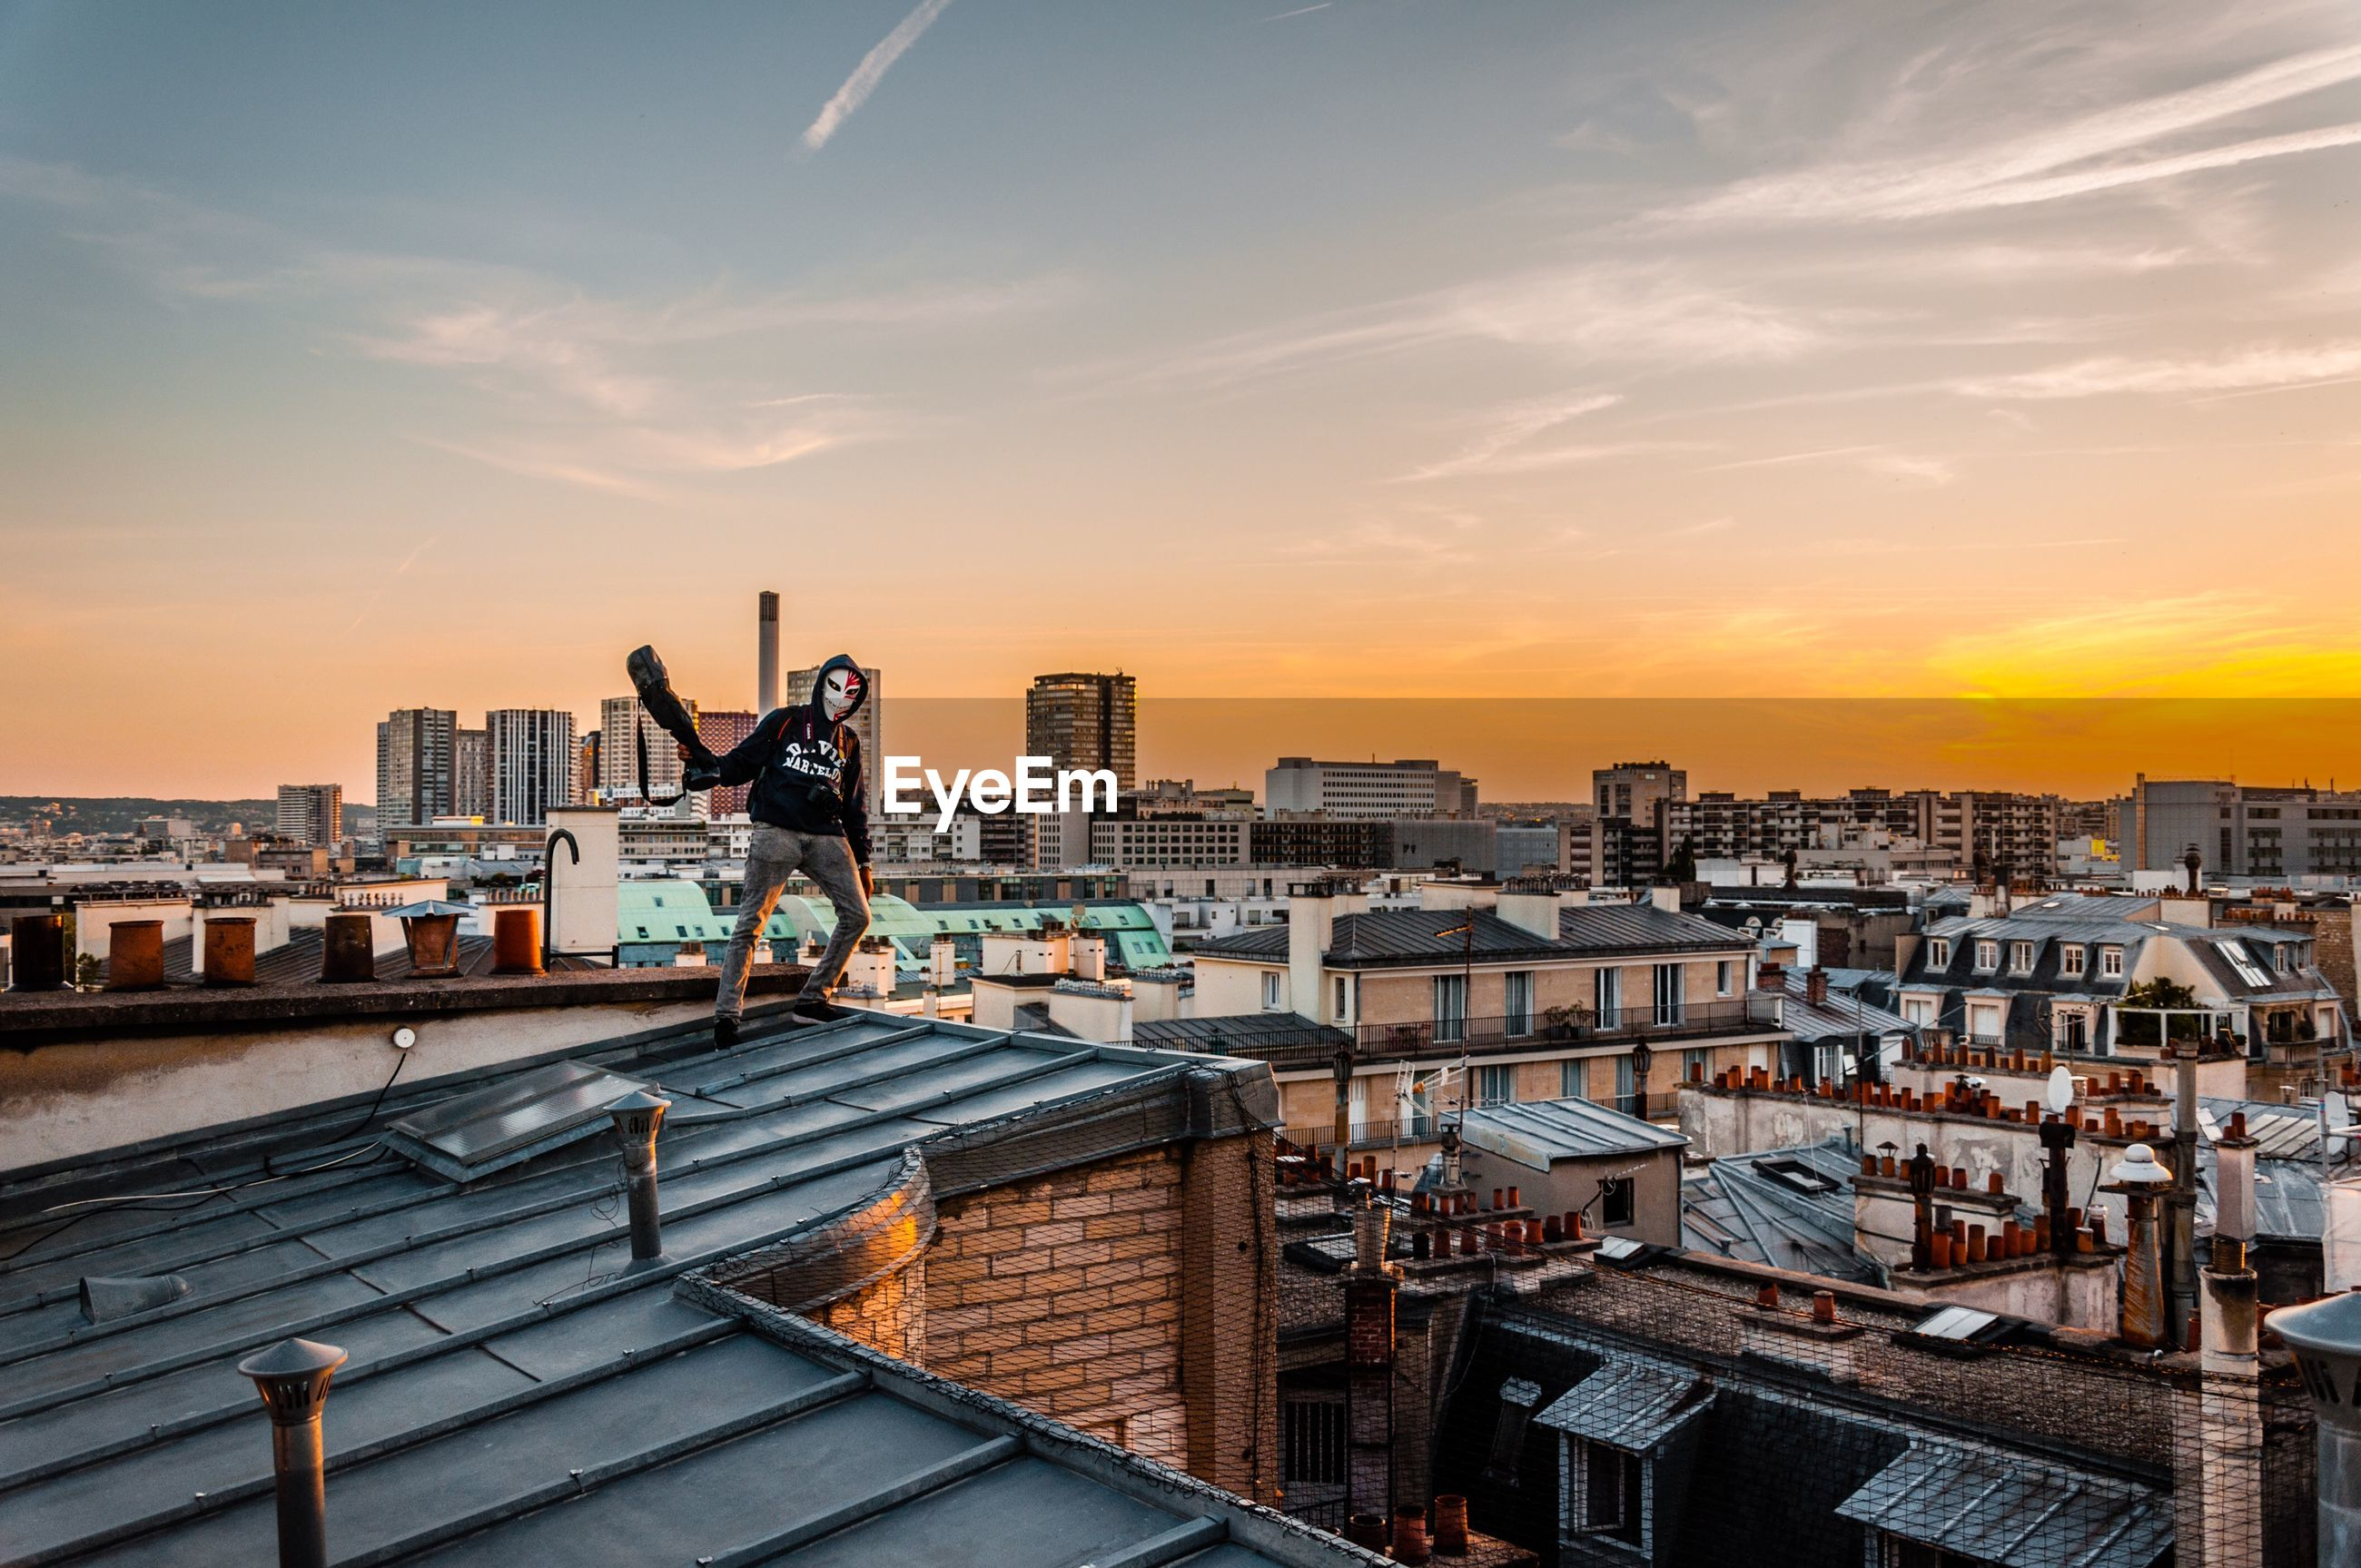 sunset, architecture, sky, city, building exterior, cityscape, built structure, orange color, nature, standing, building, residential district, crowd, one person, full length, lifestyles, real people, outdoors, leisure activity, human arm, arms raised